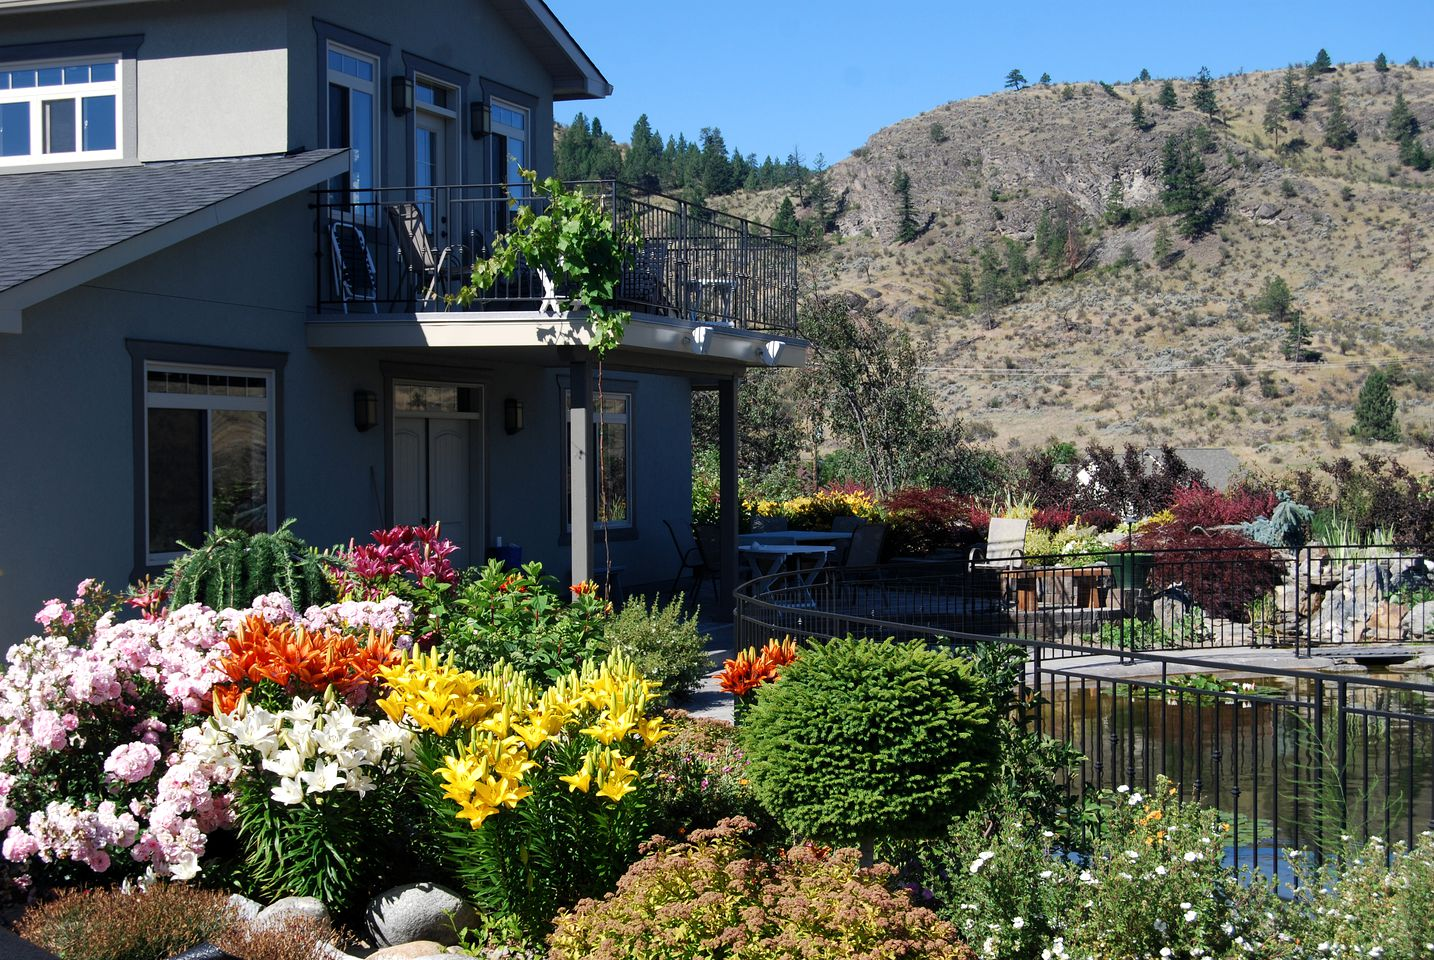 Vacation Rentals (Kaleden, British Columbia, Canada)